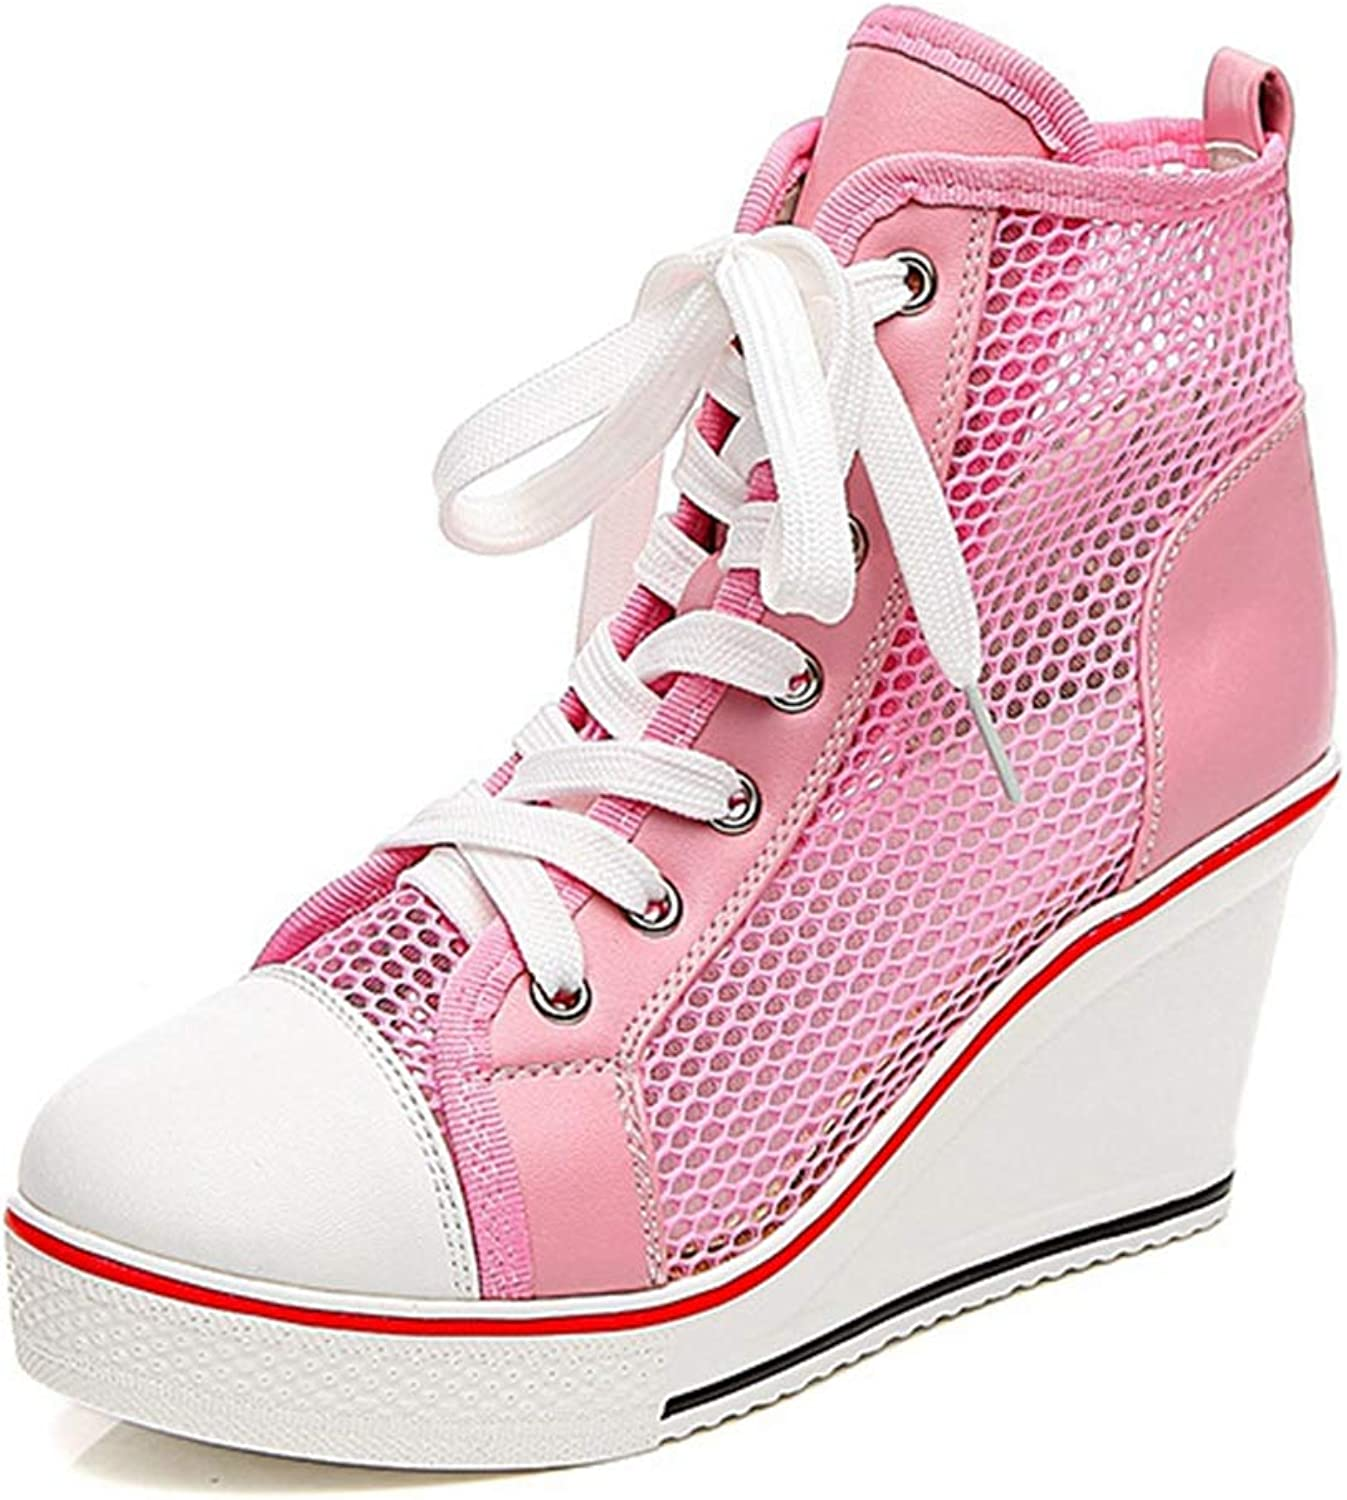 CYBLING Women's High Top Sneakers Fashion Lace Up Wedges Breathable Anti-Slip Rubber Casual shoes